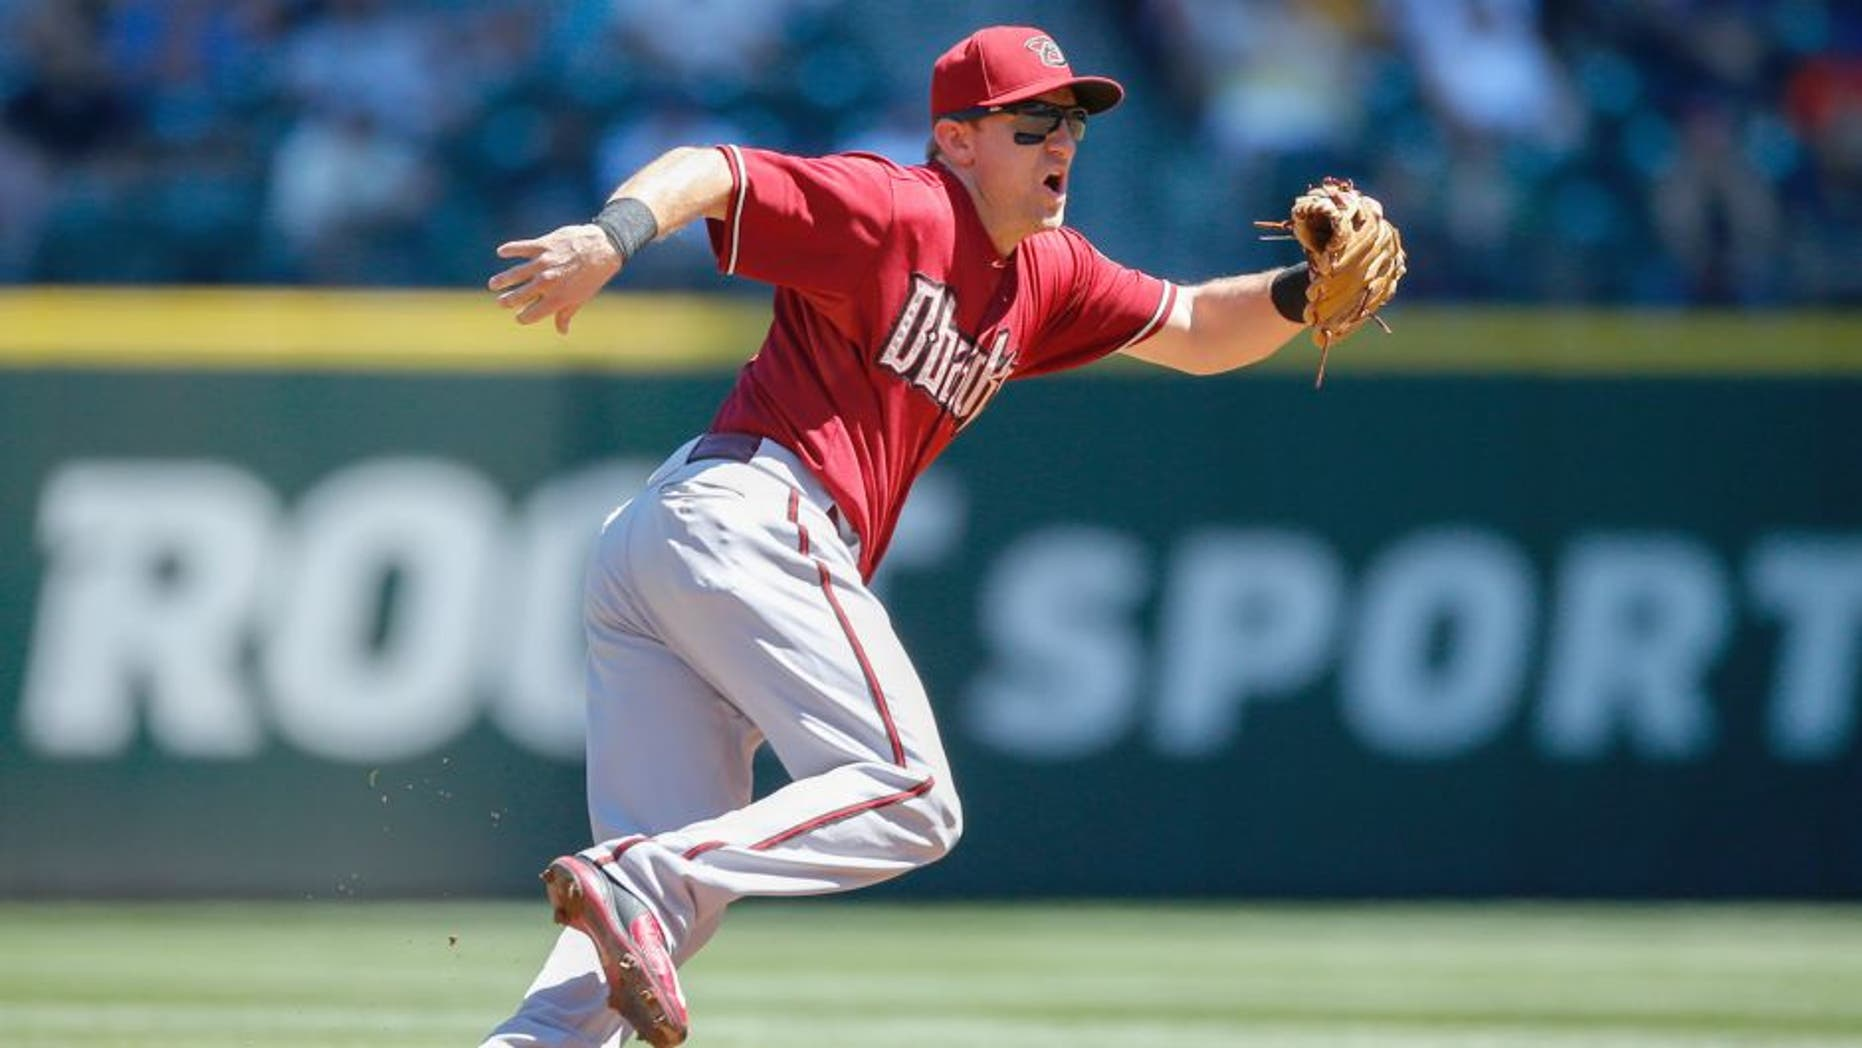 SEATTLE, WA - JULY 29: Shortstop Cliff Pennington #4 of the Arizona Diamondbacks fields a grounder against the Seattle Mariners at Safeco Field on July 29, 2015 in Seattle, Washington. (Photo by Otto Greule Jr/Getty Images)